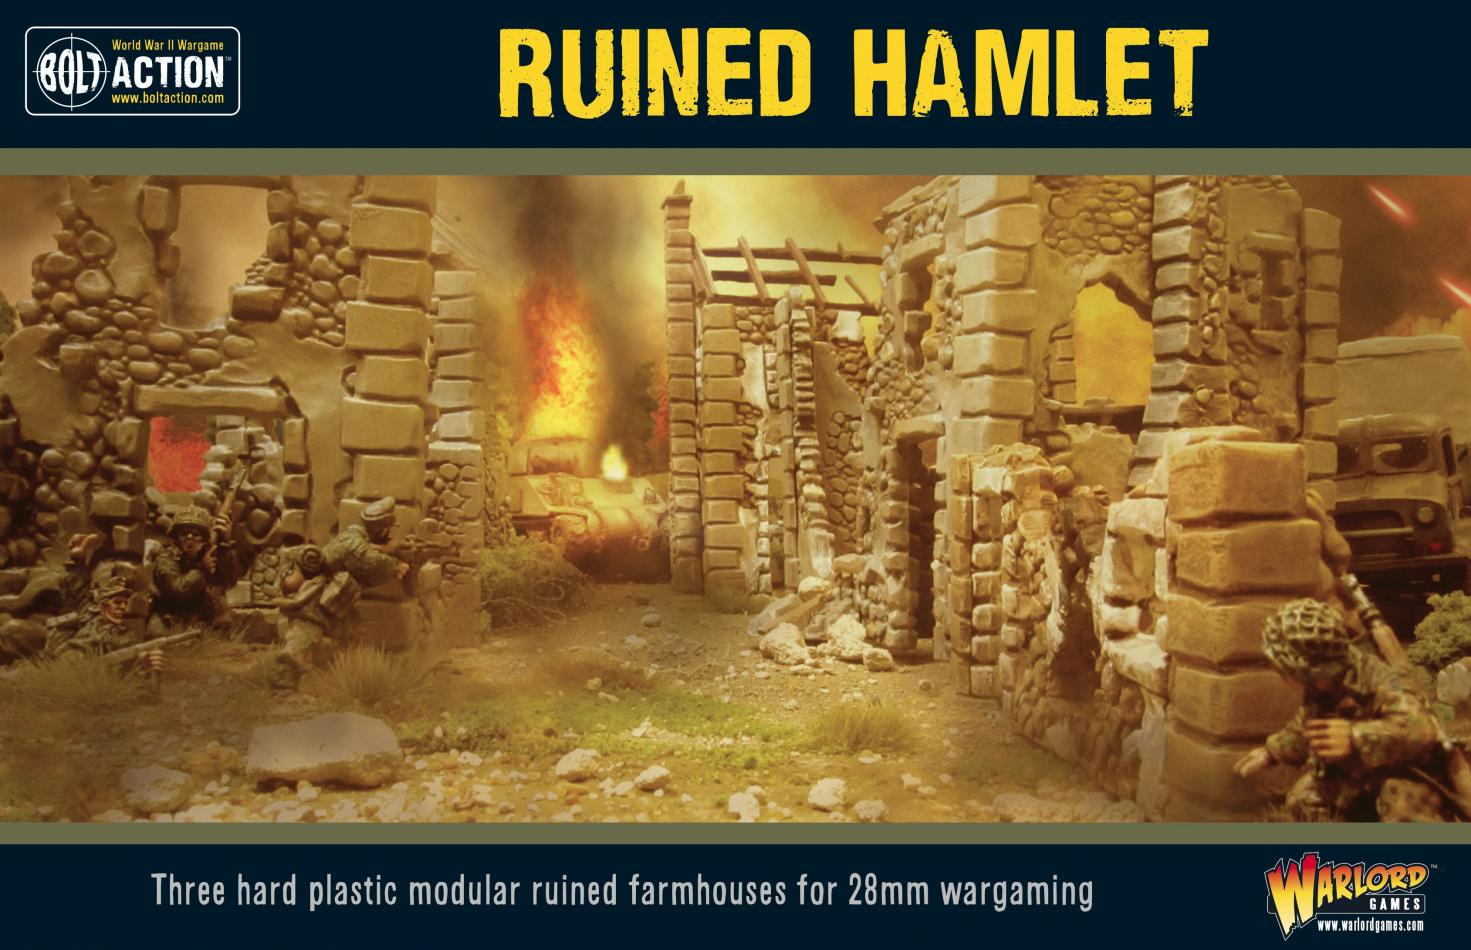 Ruined Hamlet (Reformatted)